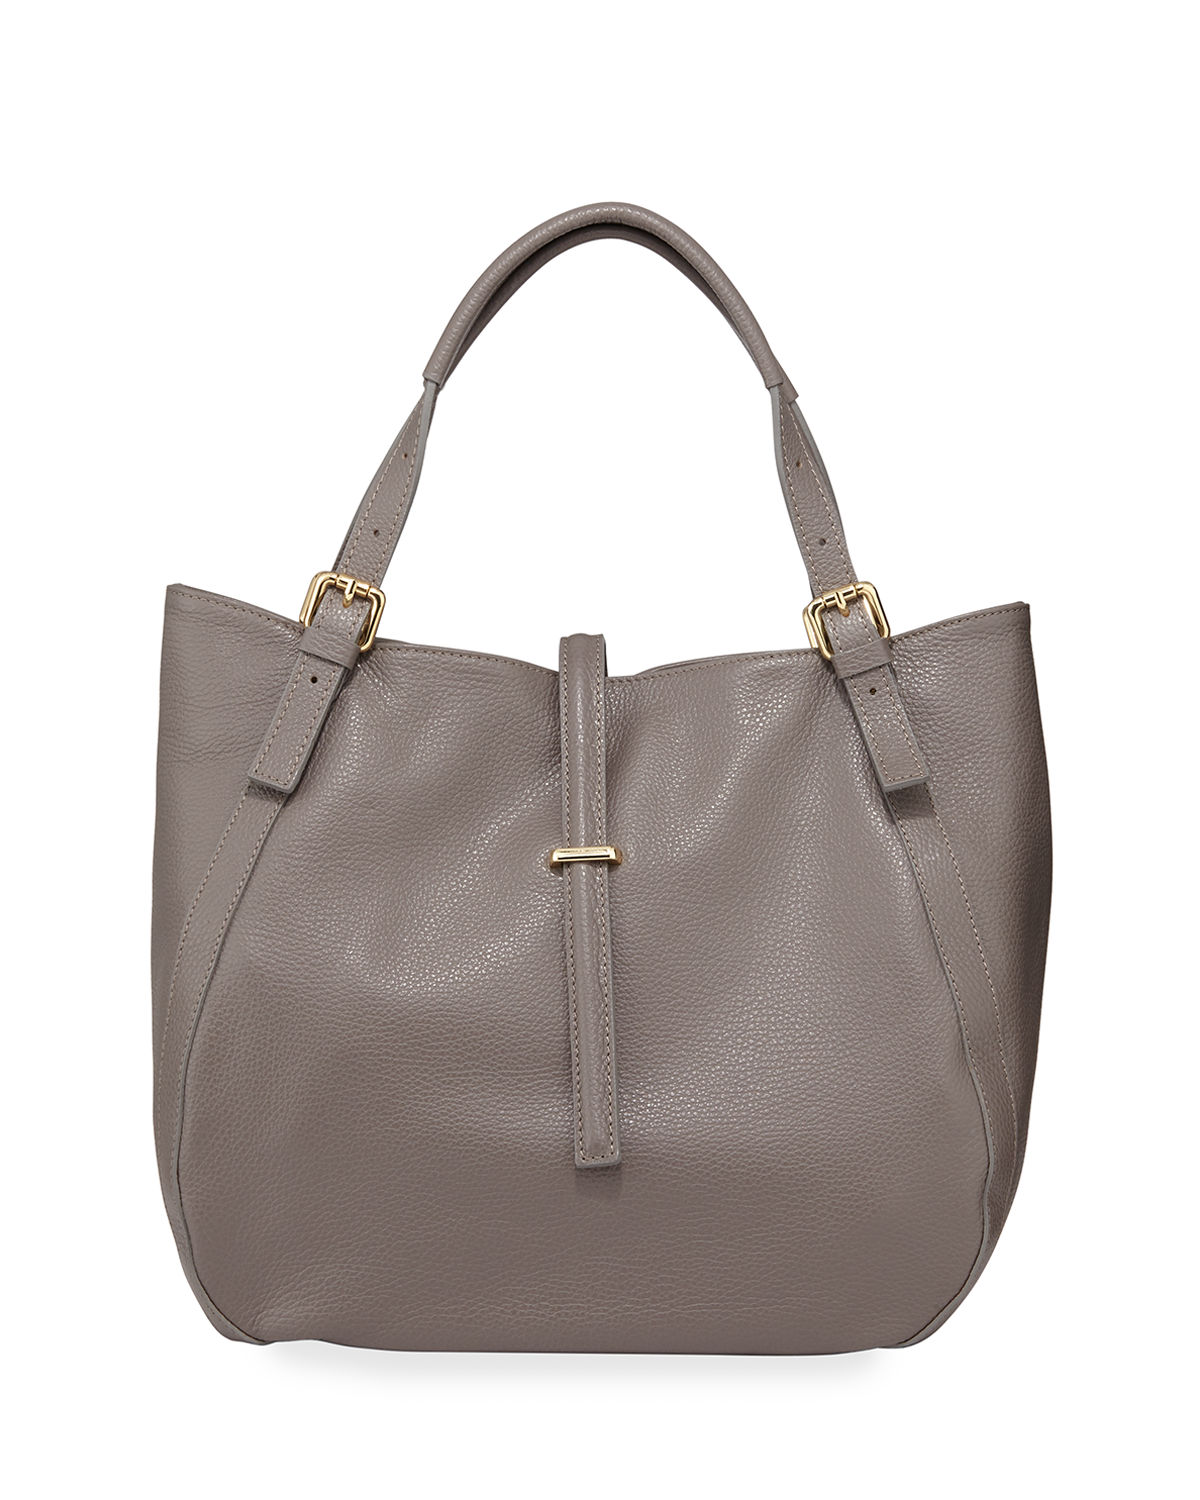 Slouchy Leather Top Handle Tote Bag